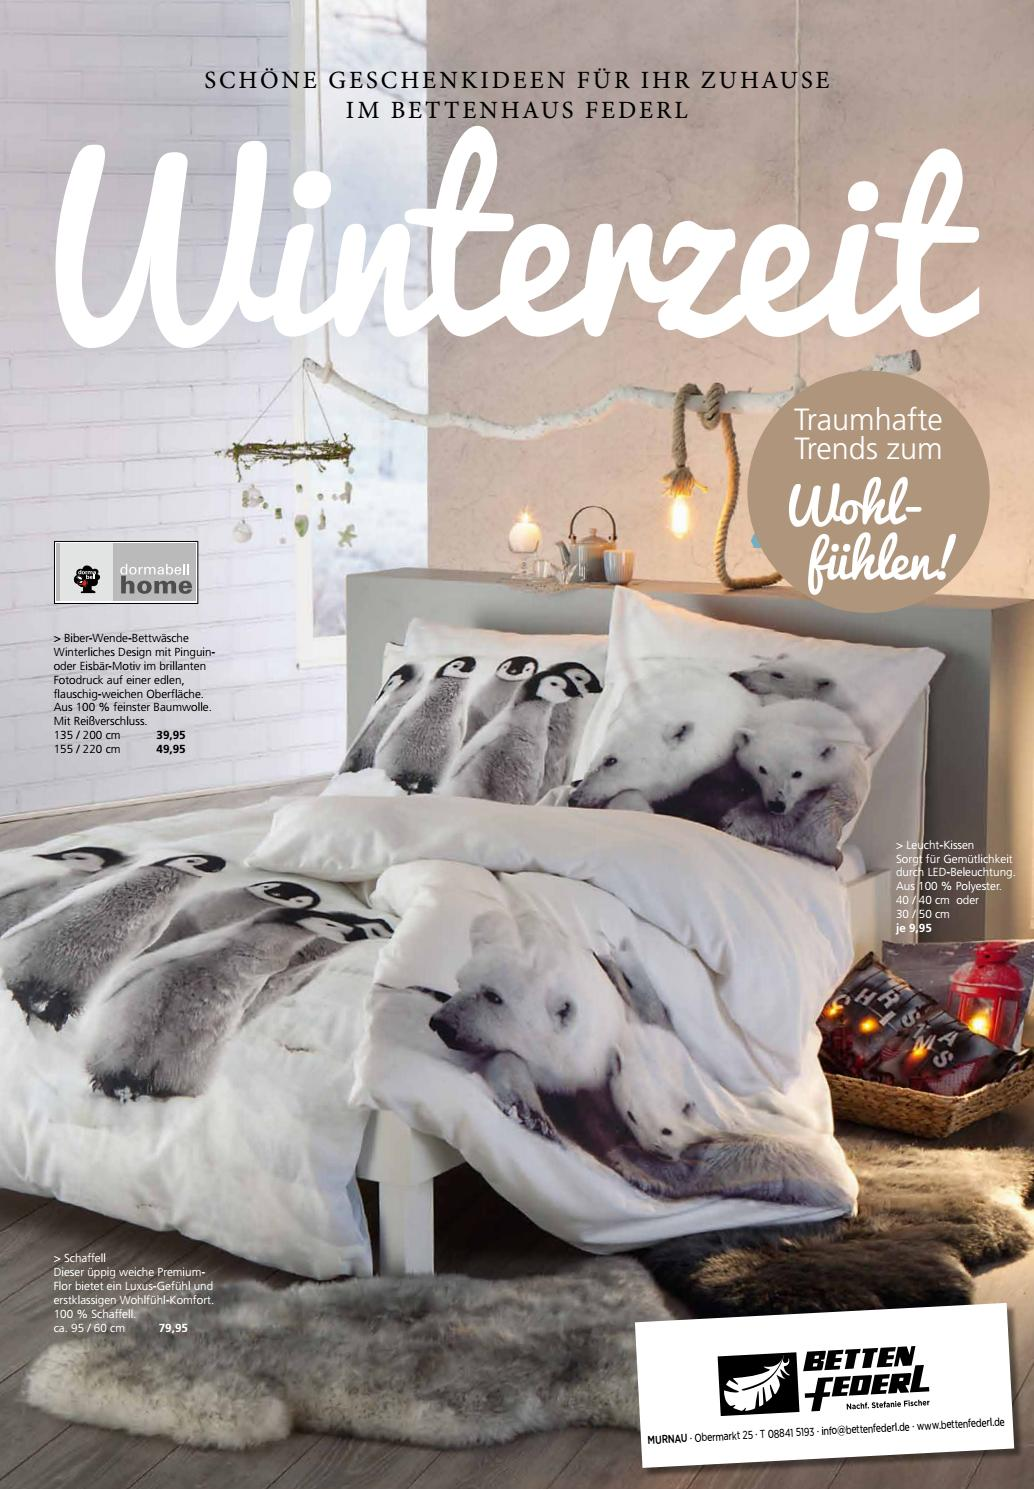 betten federl prospekt winterzeit 11 2017 by betten federl murnau am staffelsee issuu. Black Bedroom Furniture Sets. Home Design Ideas